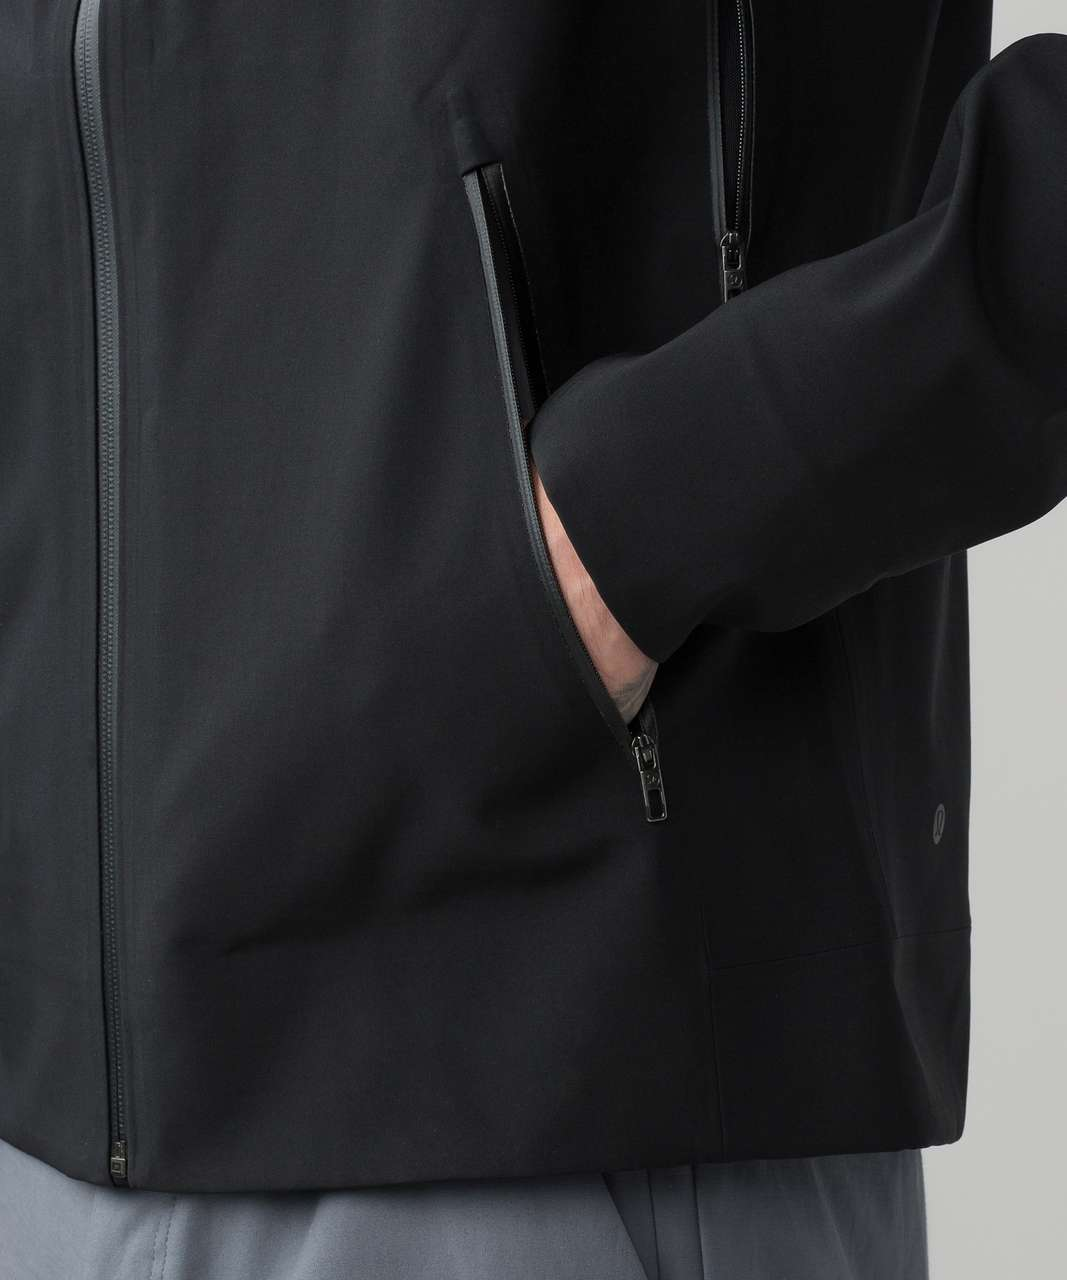 Lululemon Furtive Jacket - Black / Heathered Slate / Black